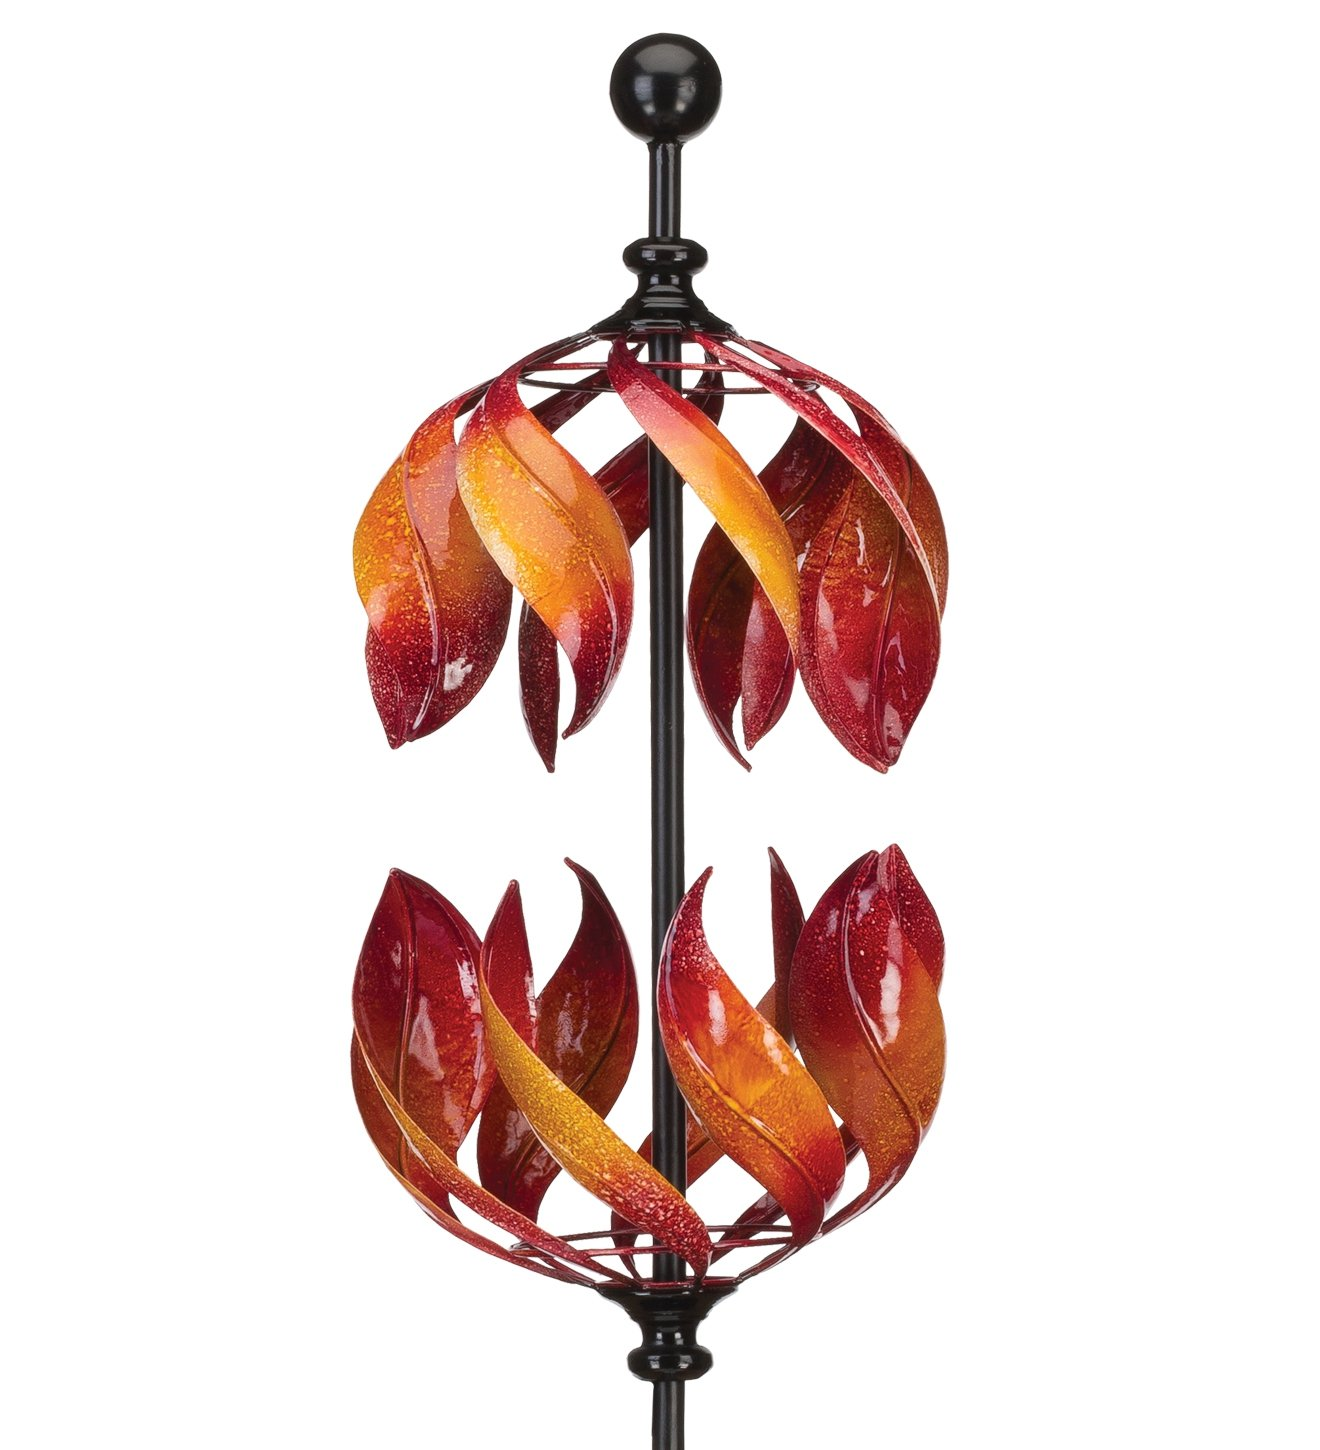 Regal Art & Gift Vertical Kinetic Stake 11.5 Inches X 11.5 Inches X 65.75 Inches Metal - Double Flame